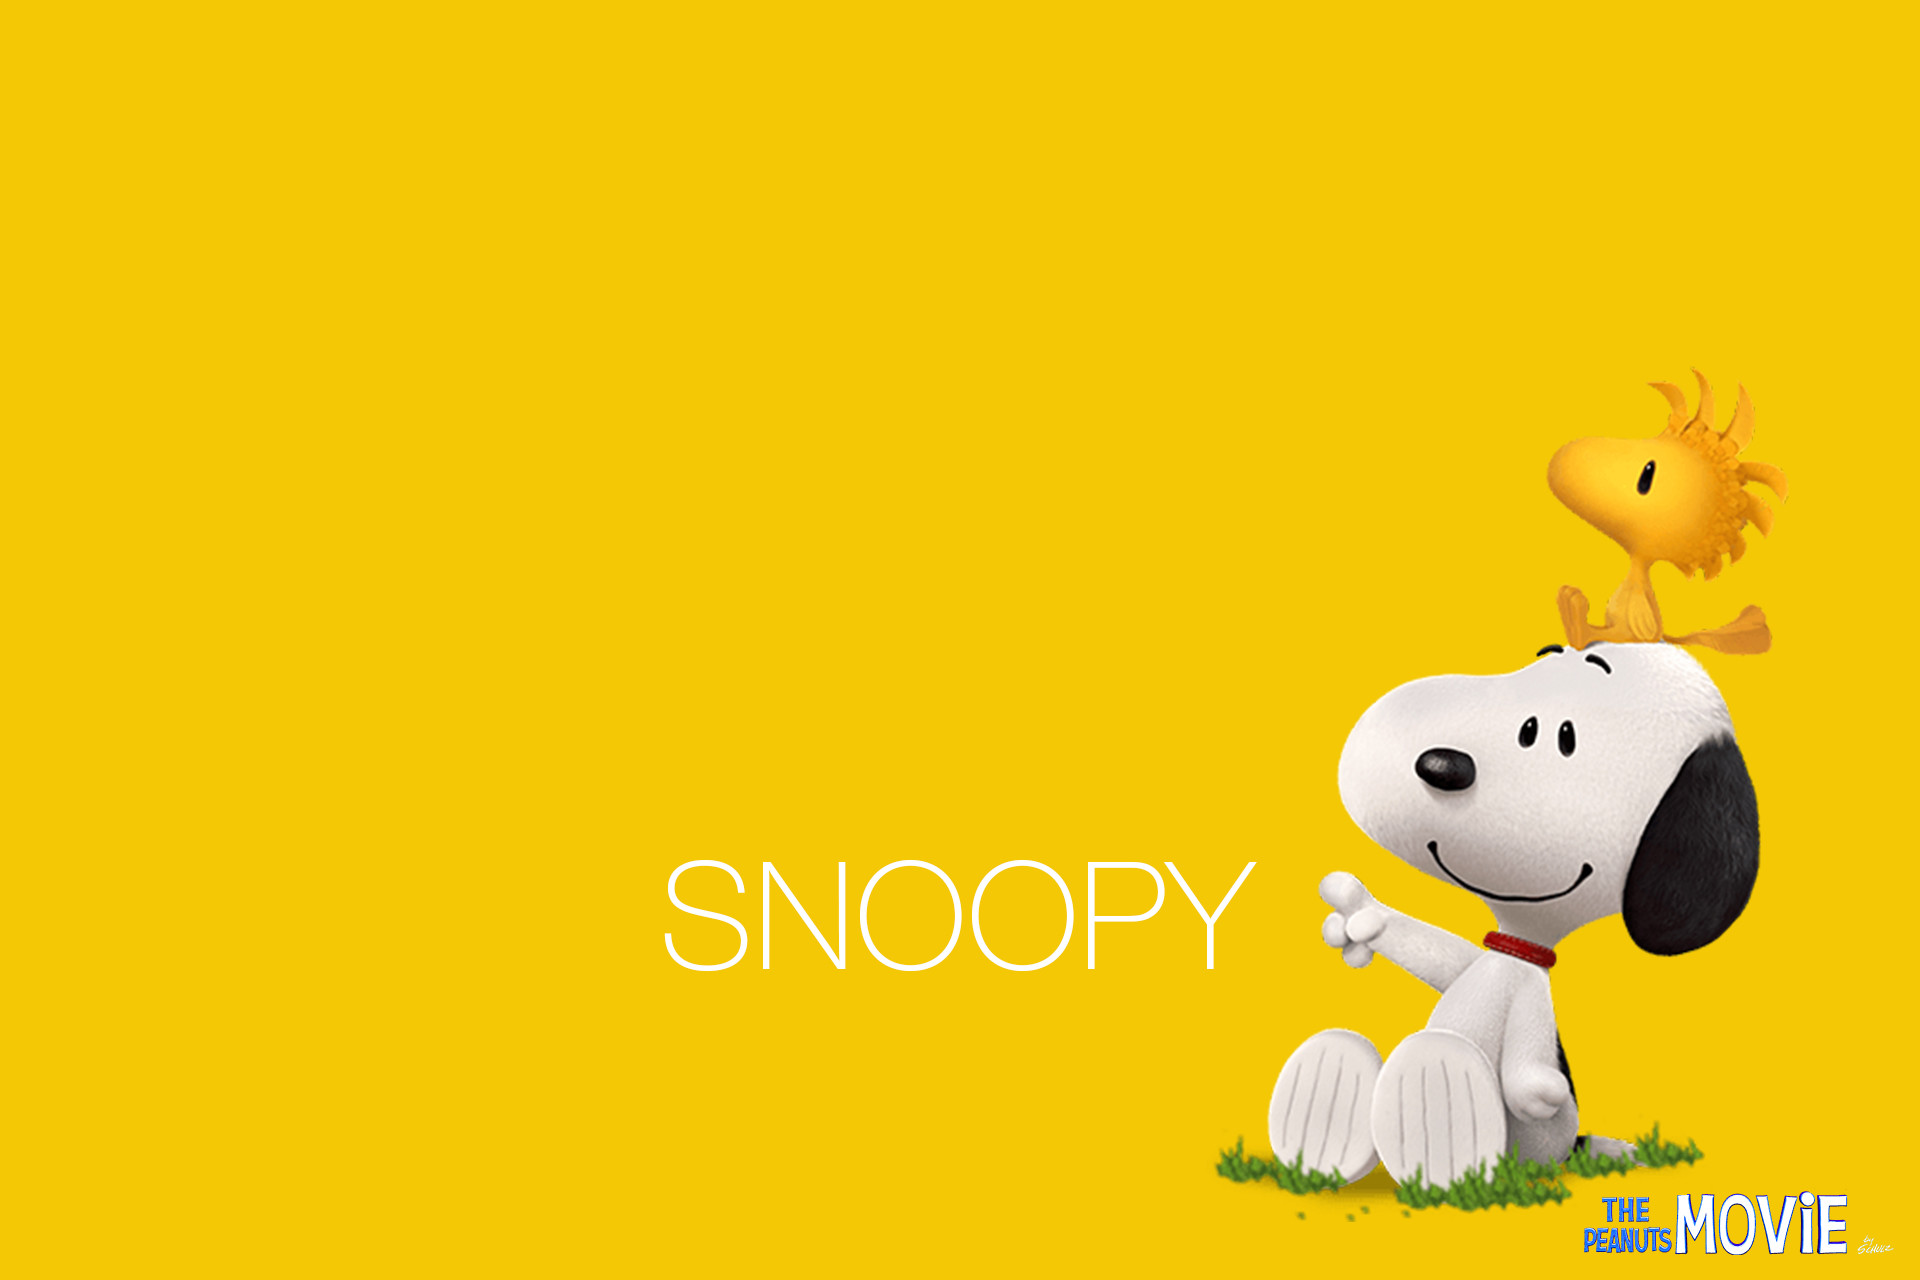 1920x1280 Snoopy images Snoopy HD wallpaper and background photos